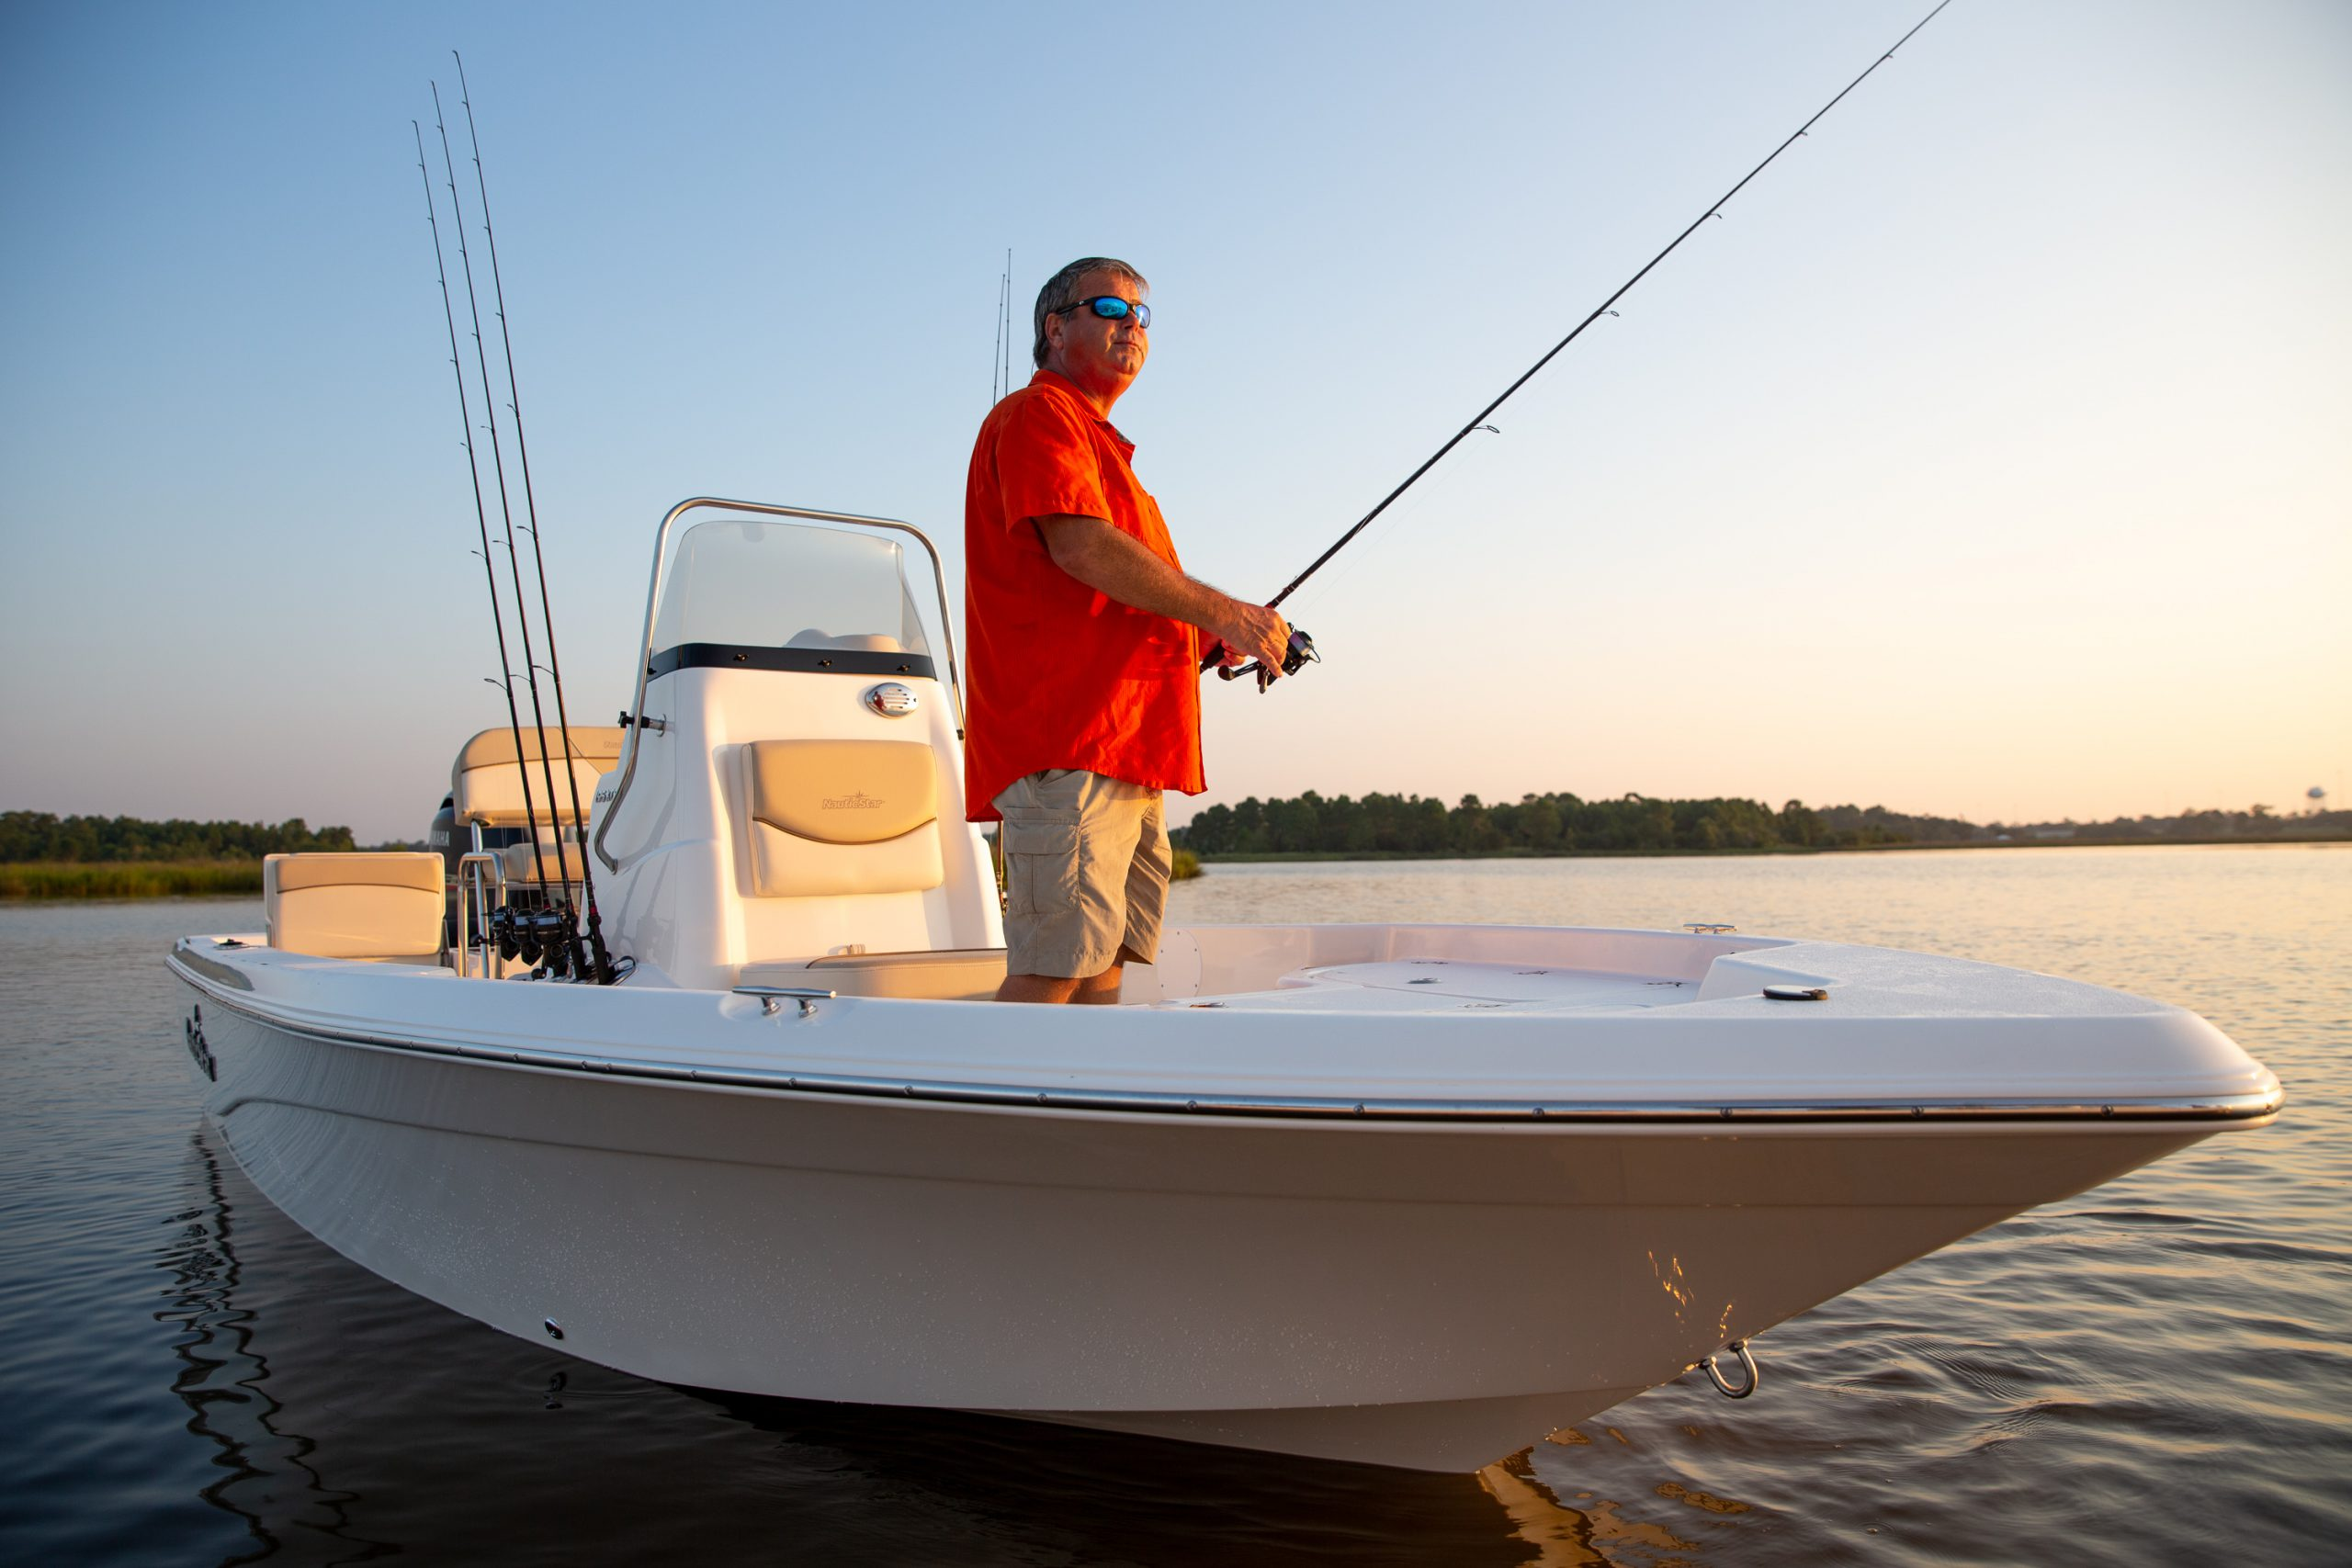 A man fishes near the center console seat of a NauticStar 195XTS boat at dawn